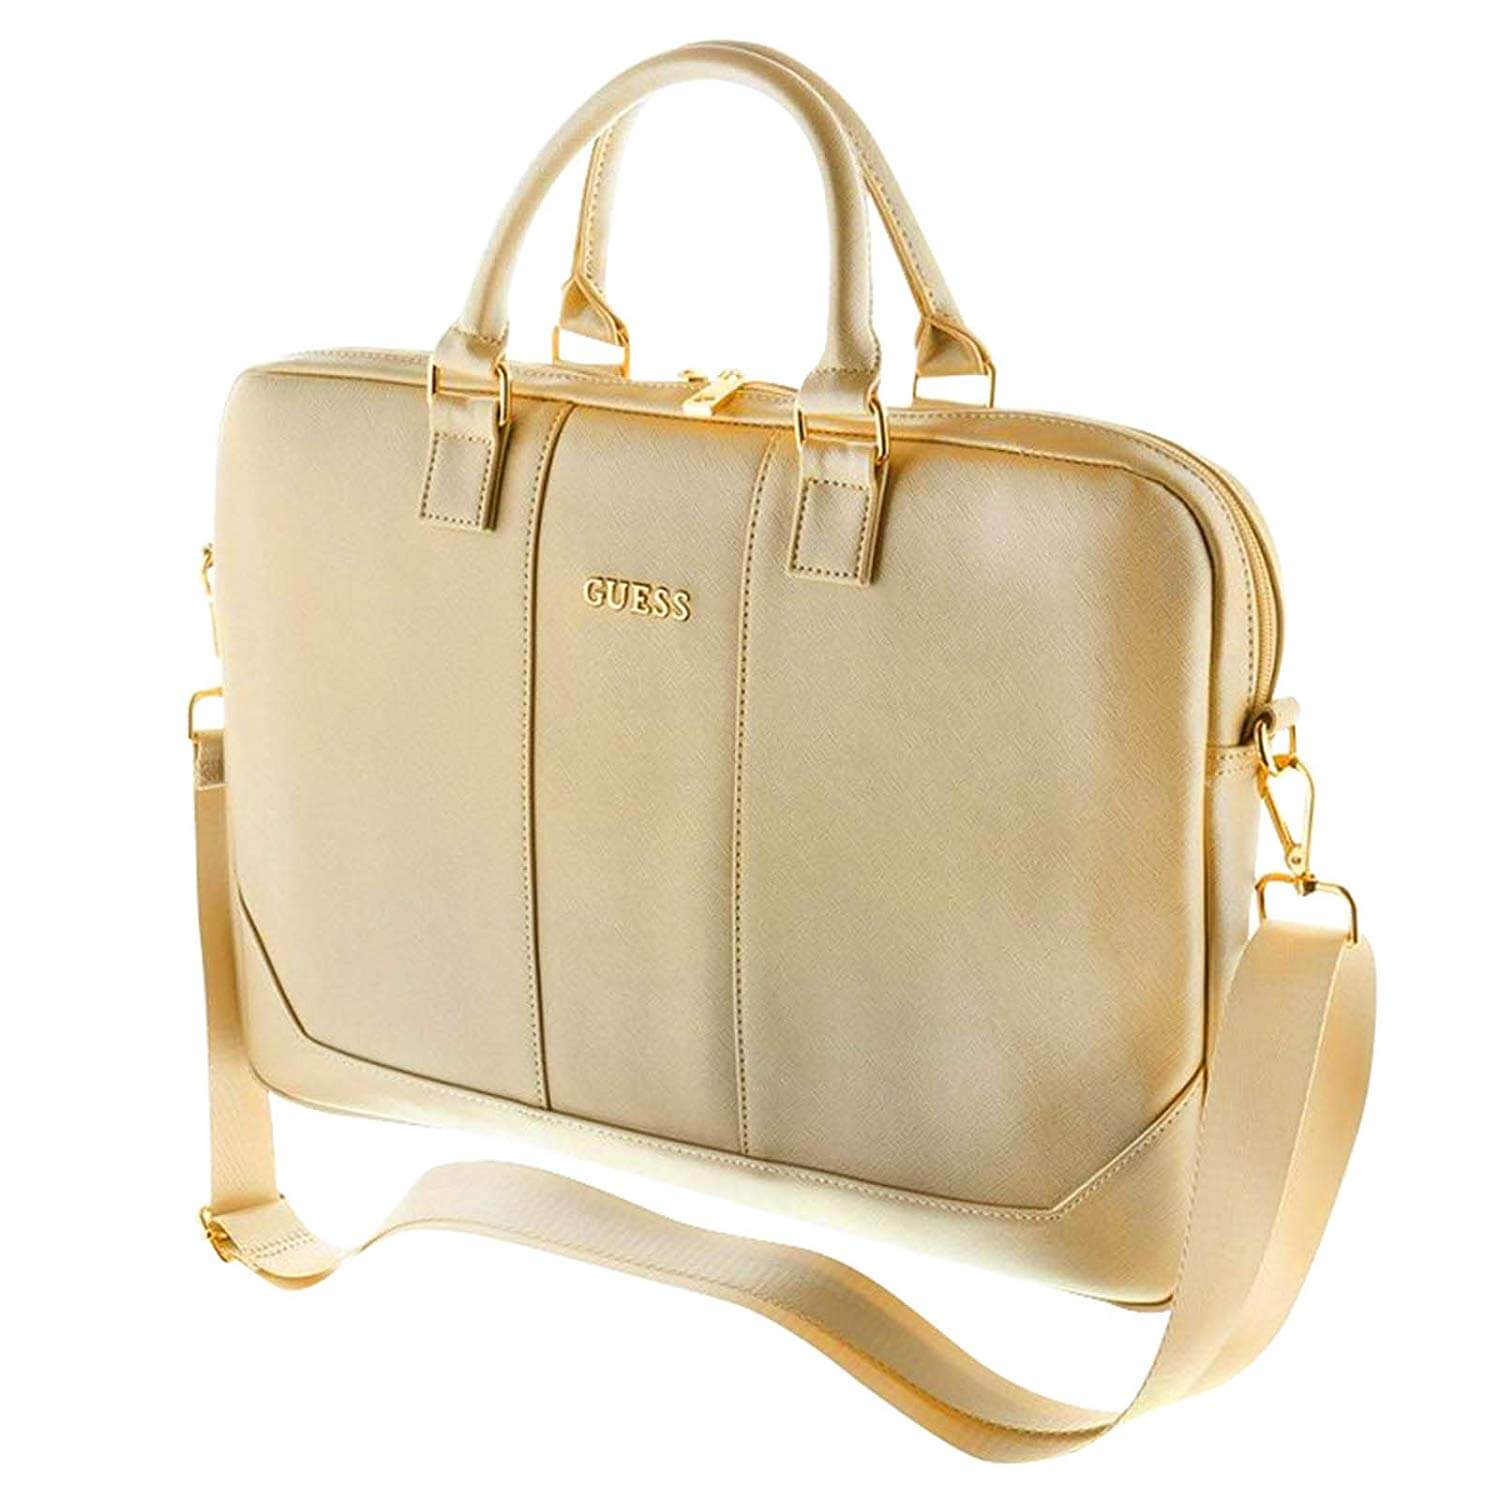 Guess Saffiano Bag for laptops up to 15 inches (gold)